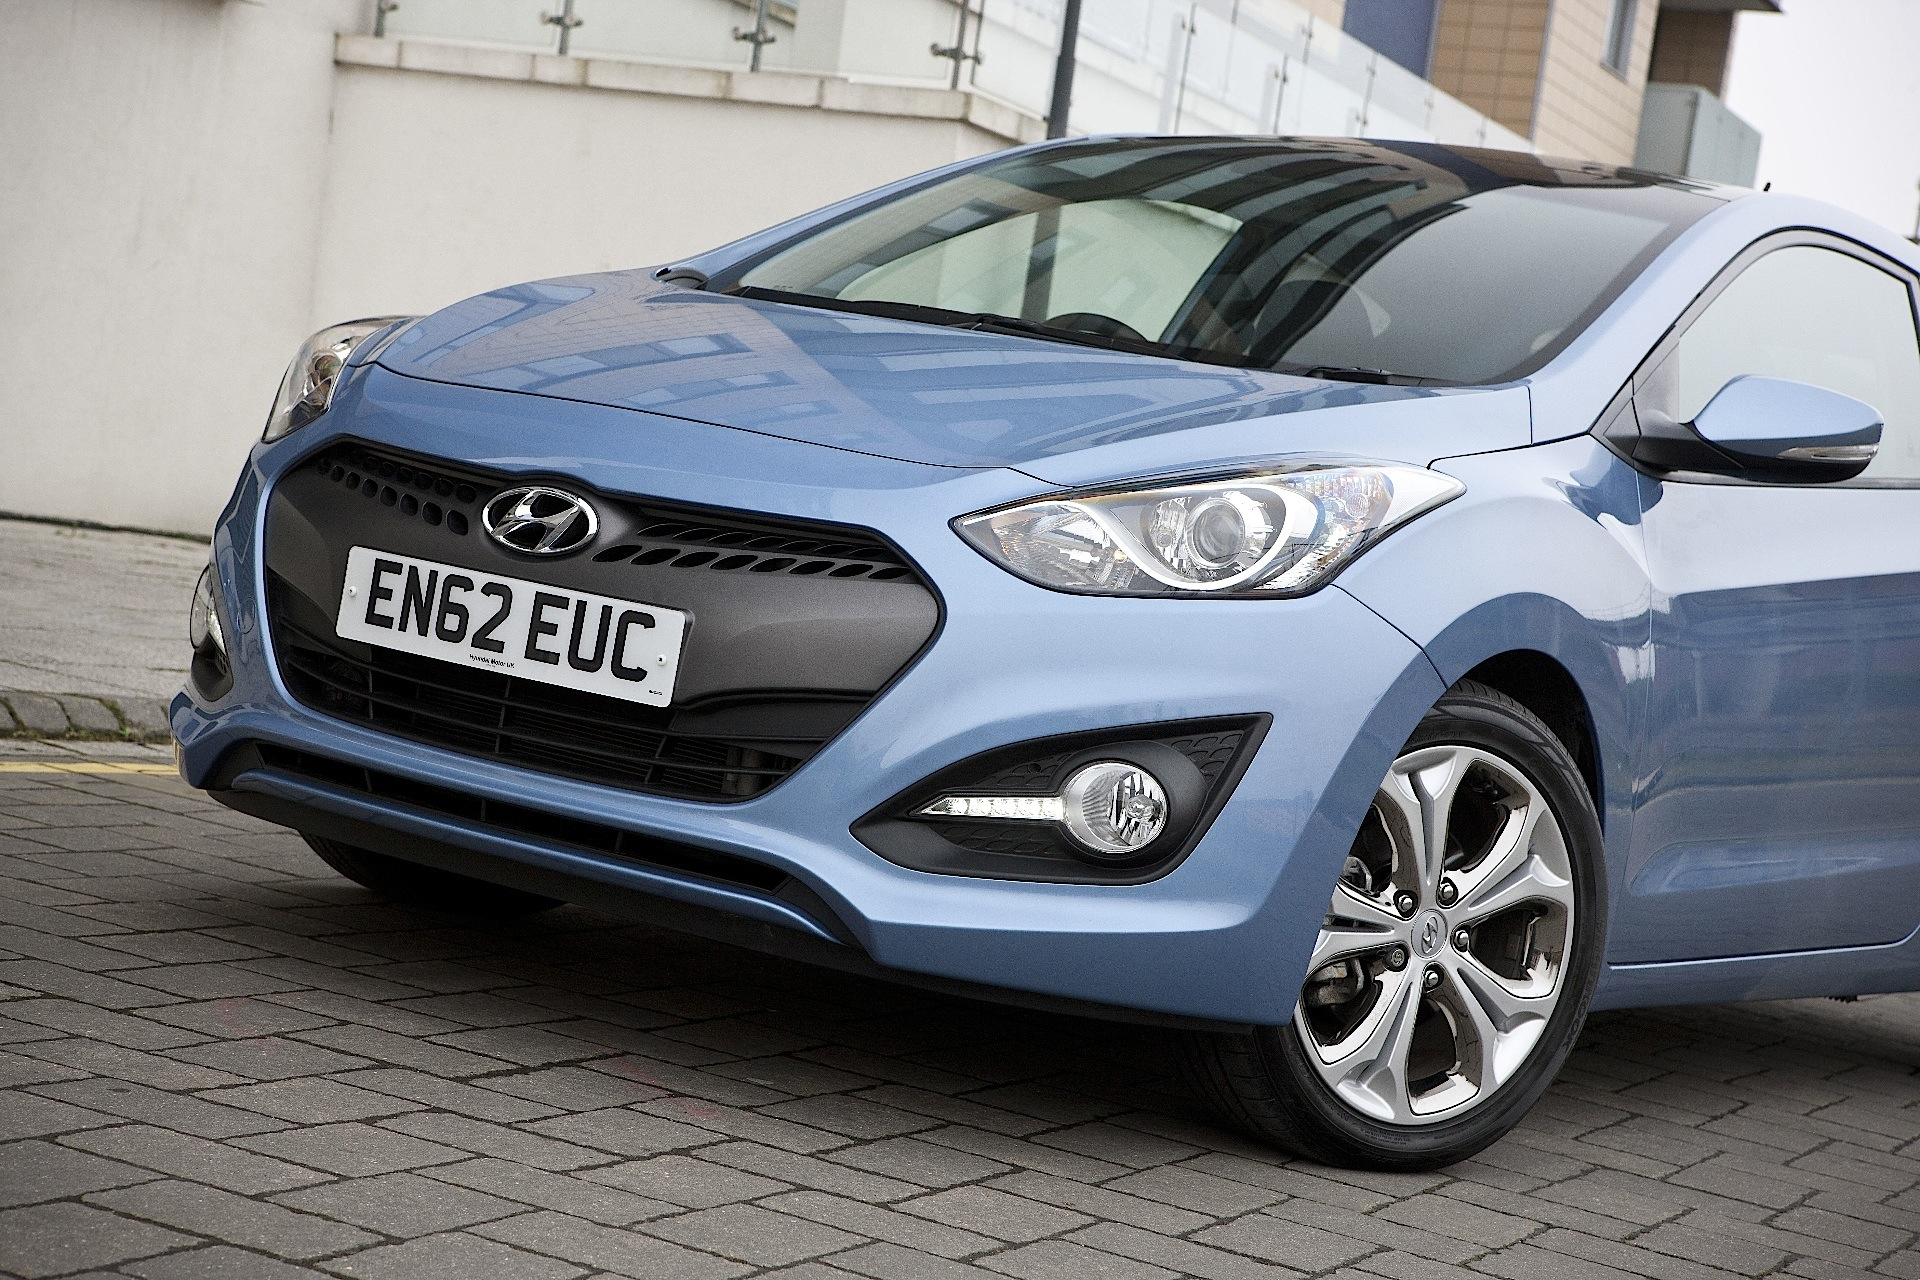 hyundai i30 coupe specs 2012 2013 2014 2015 2016 2017 2018 autoevolution. Black Bedroom Furniture Sets. Home Design Ideas